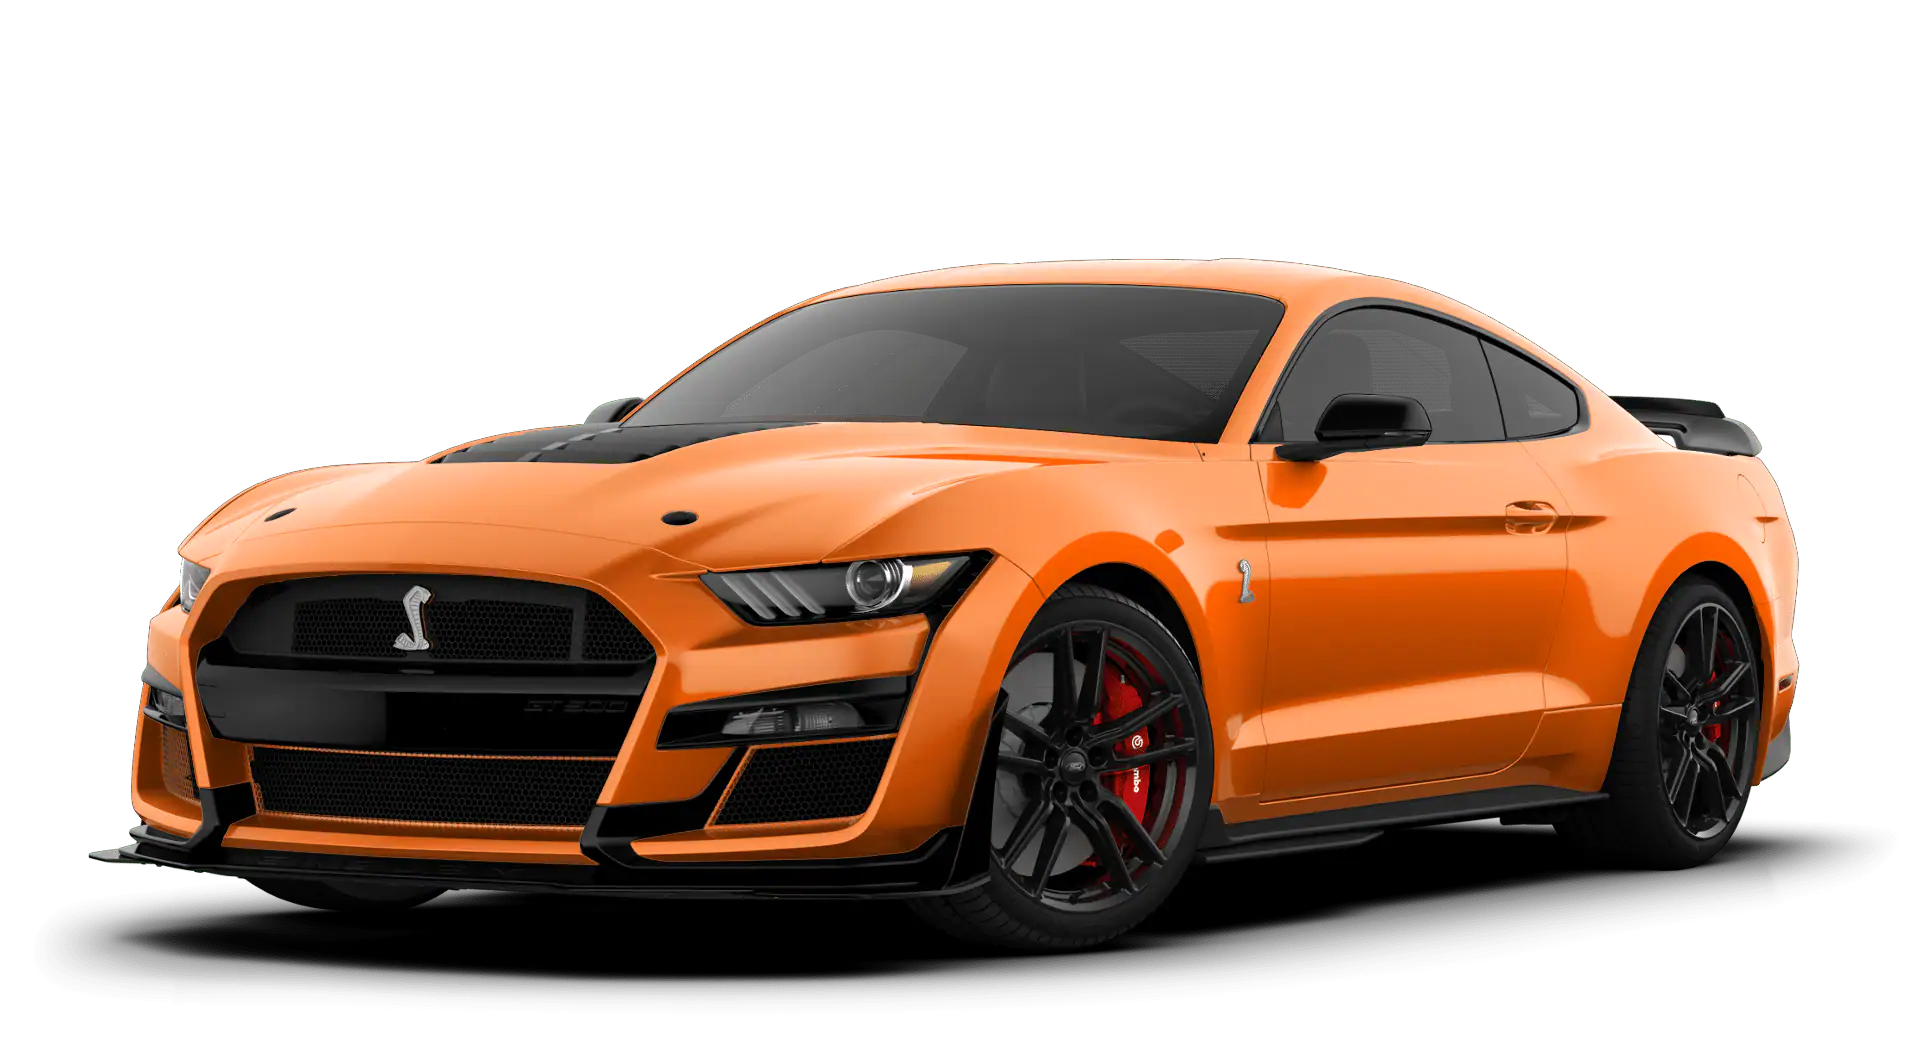 2020 Ford Mustang Shelby GT500 twister orange